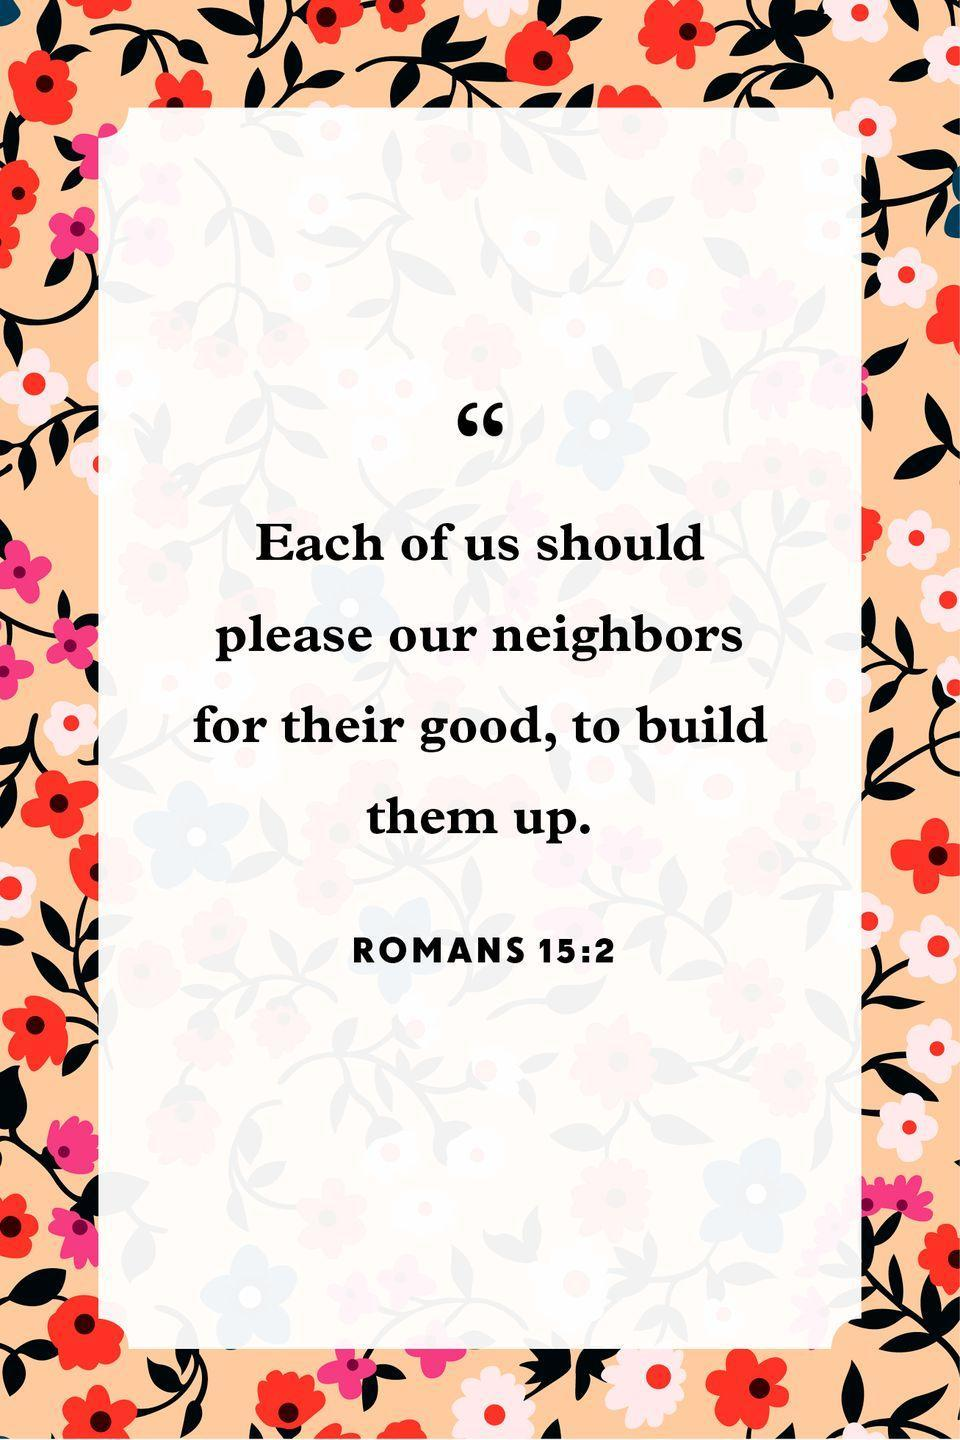 "<p>""Each of us should please our neighbors for their good, to build them up.""</p>"